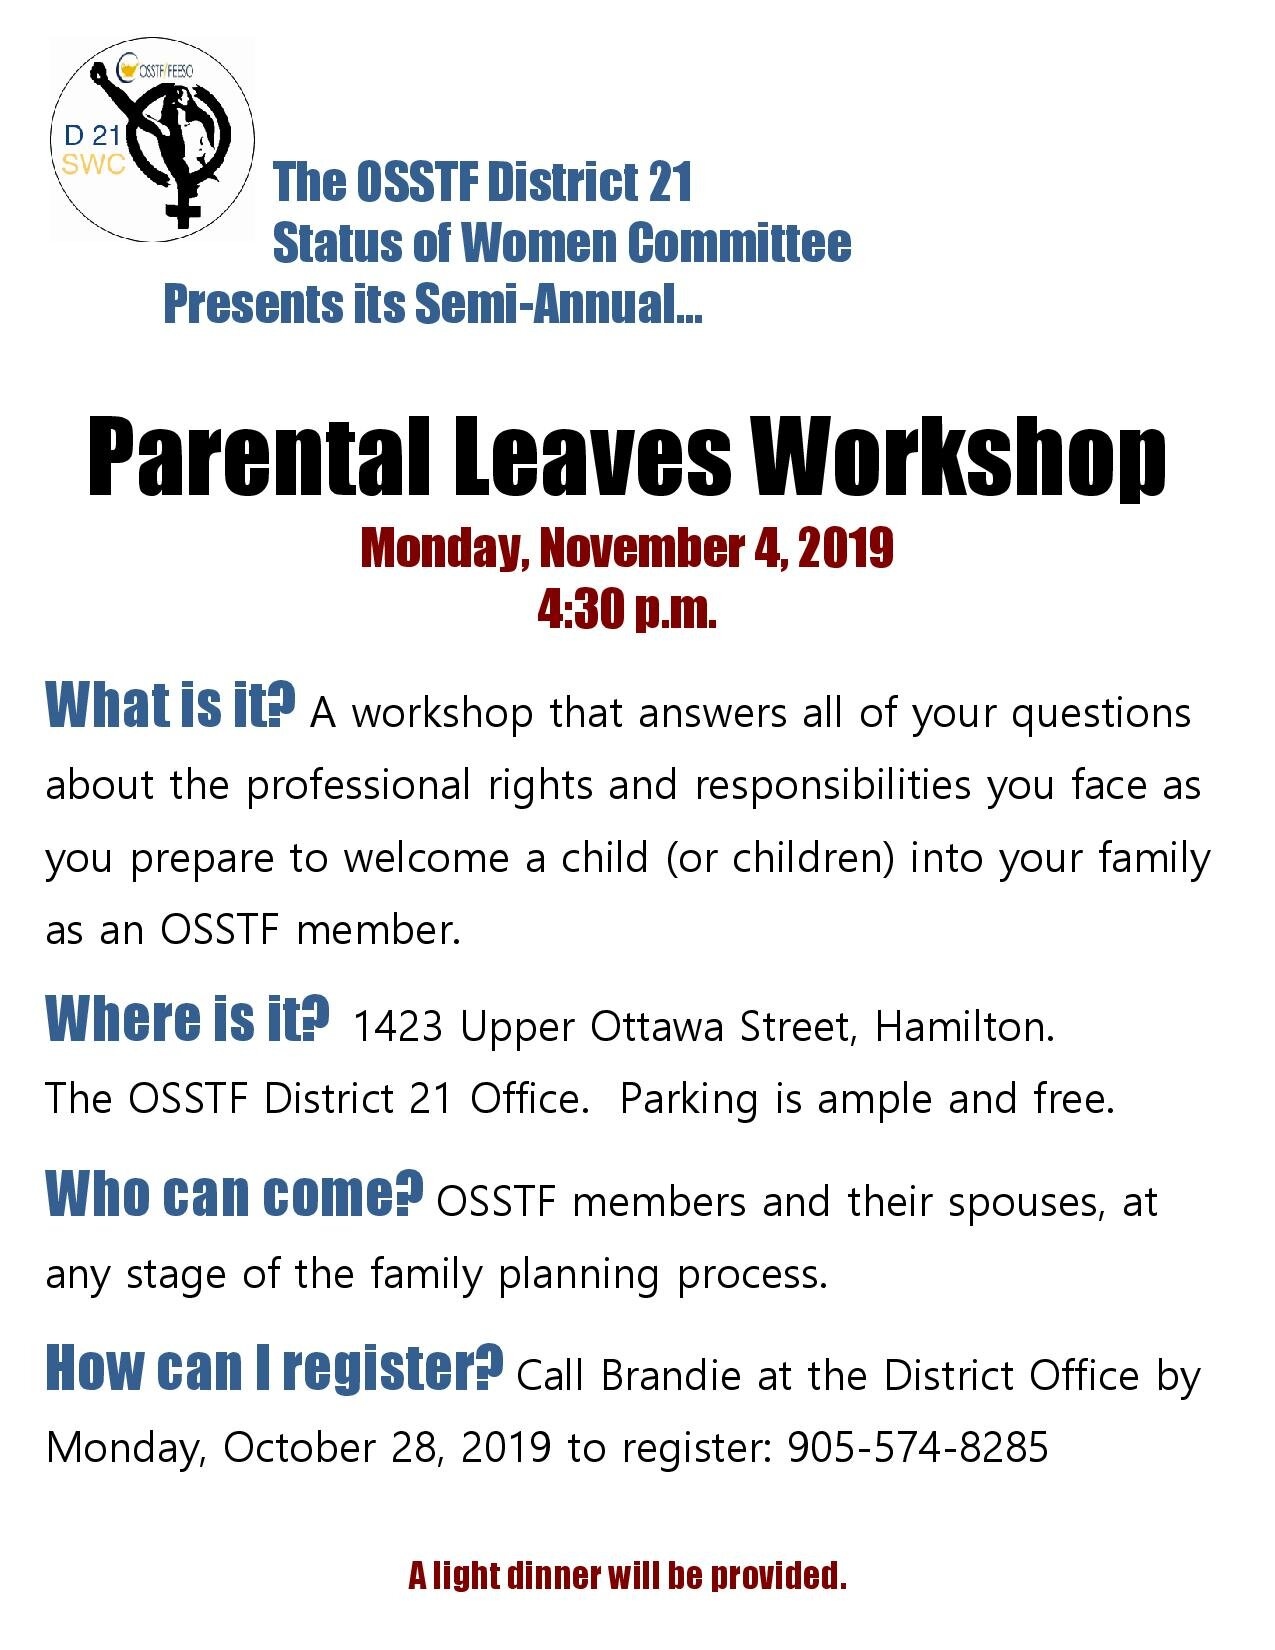 Parental Leave Workshop Flyer 2019-page-001.jpg